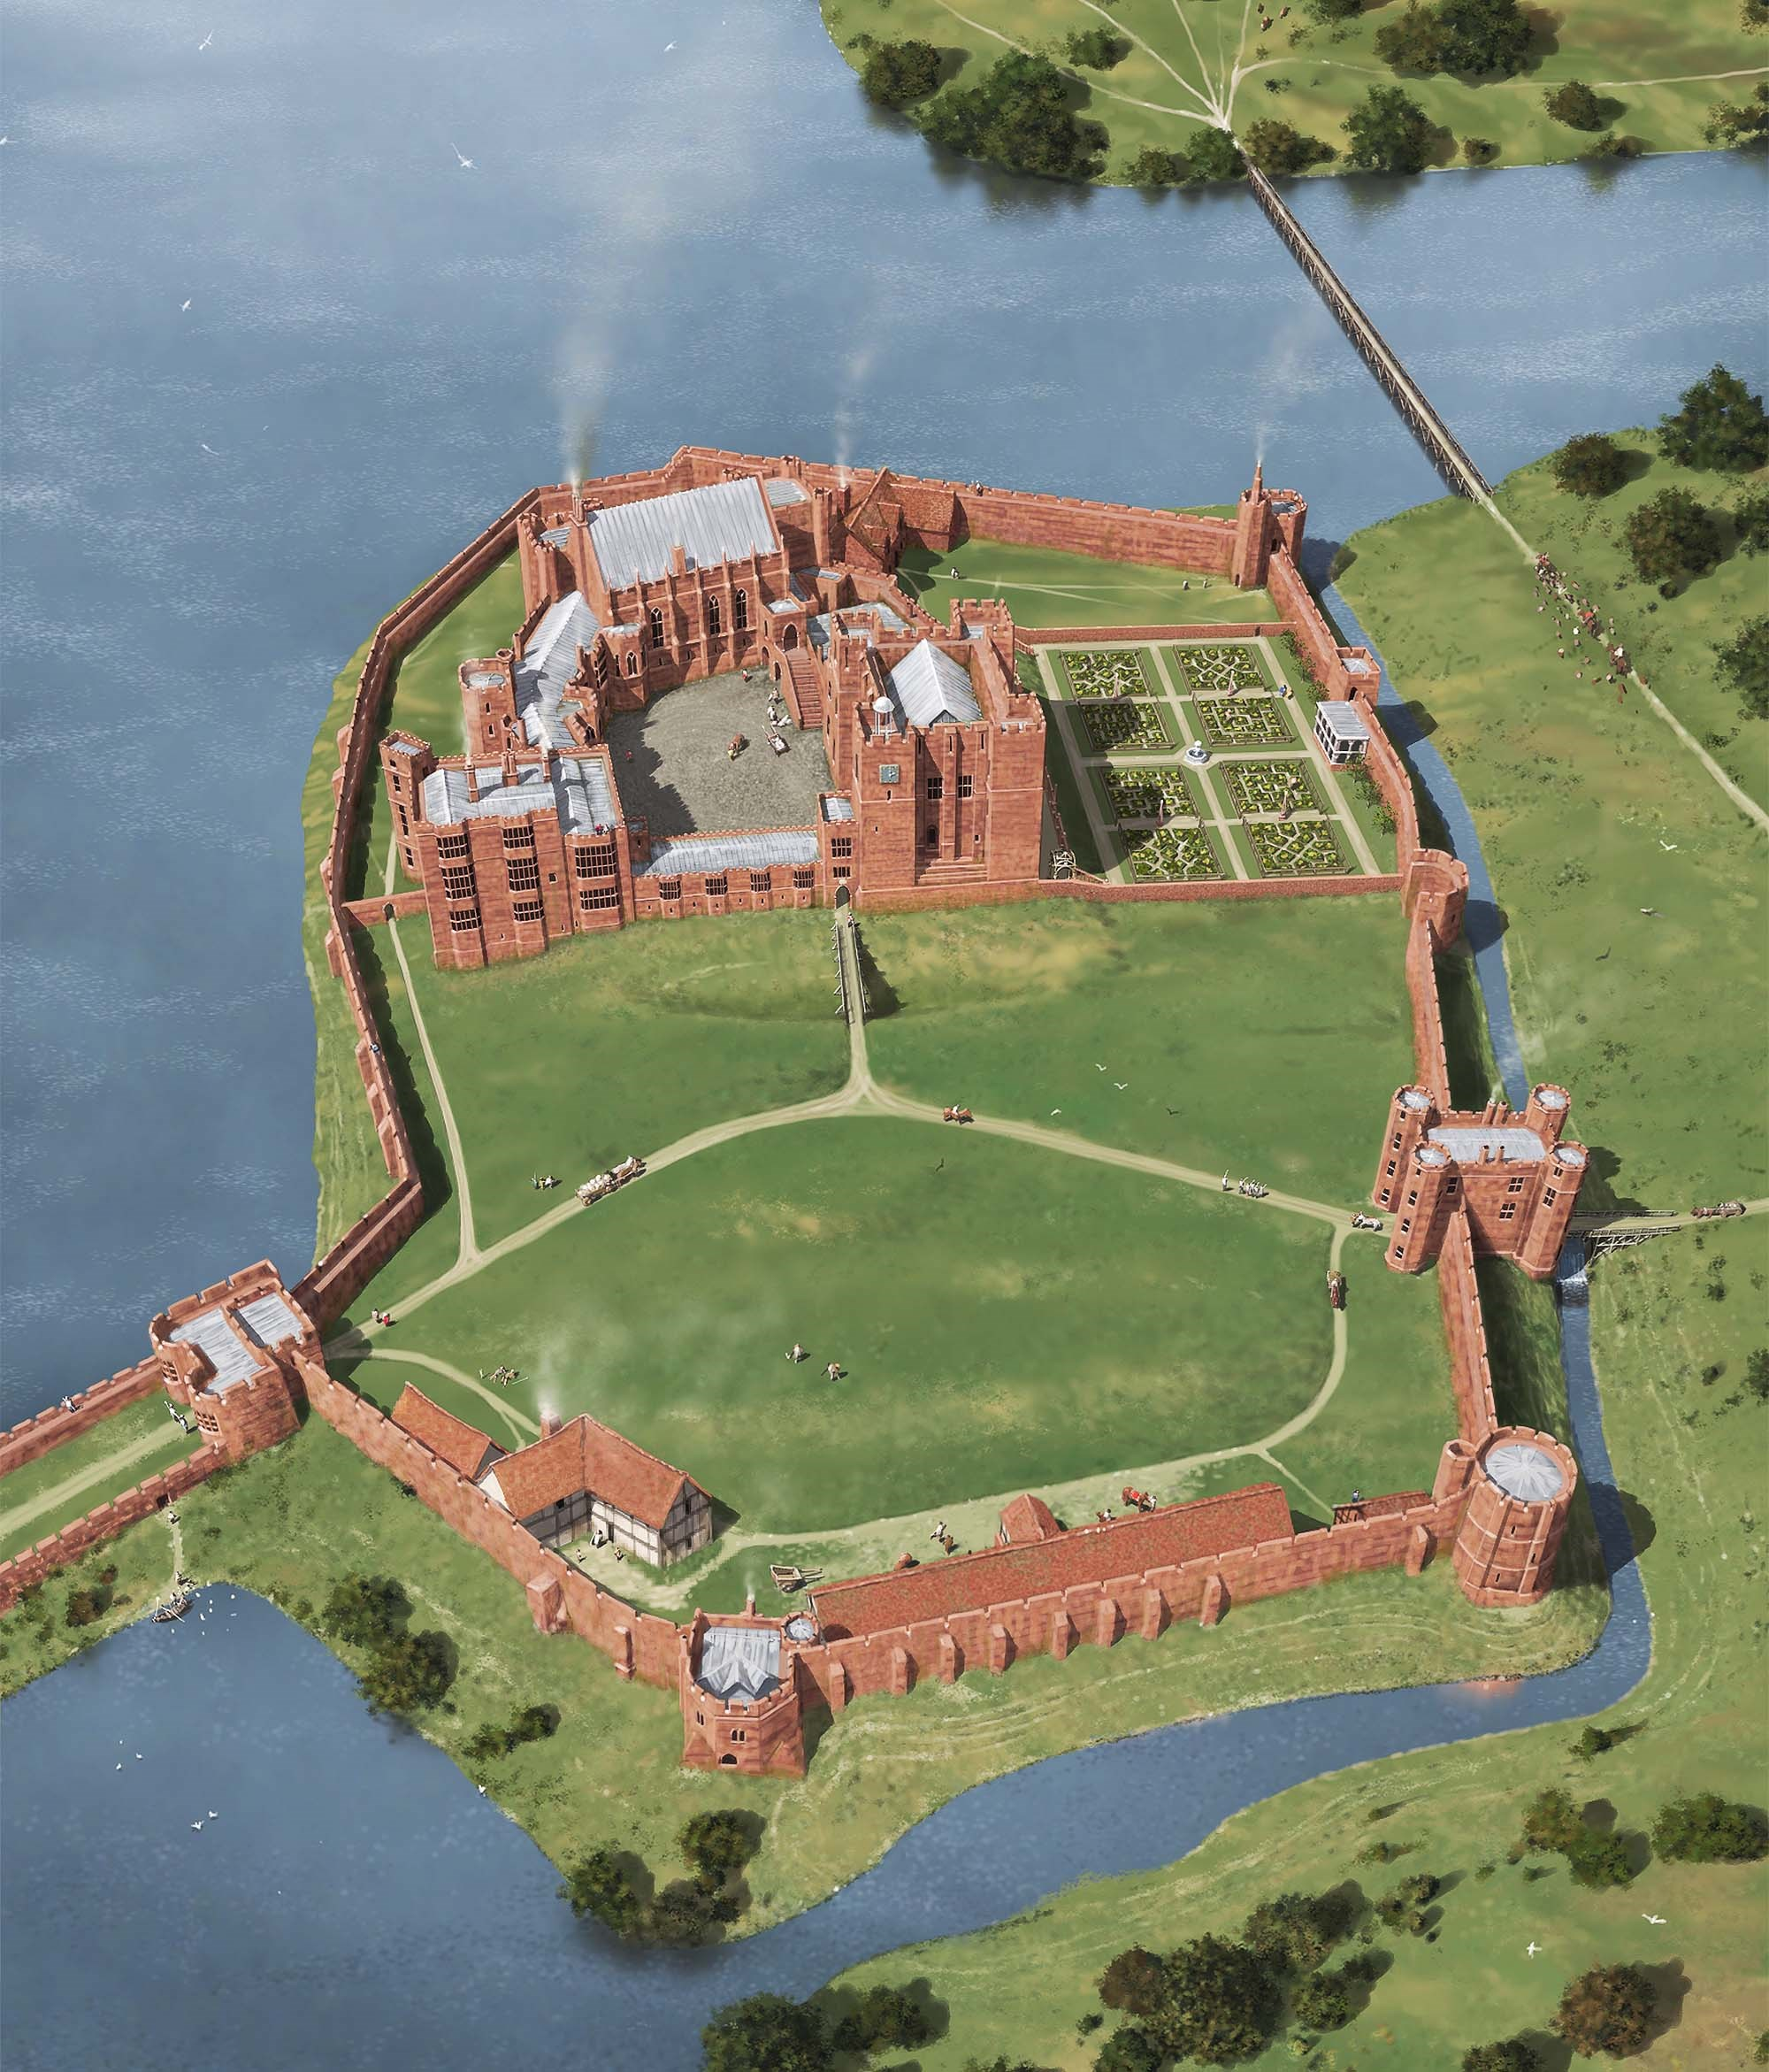 A reconstruction of Kenilworth as it may have appeared in 1575, after the Earl of Leicester's works